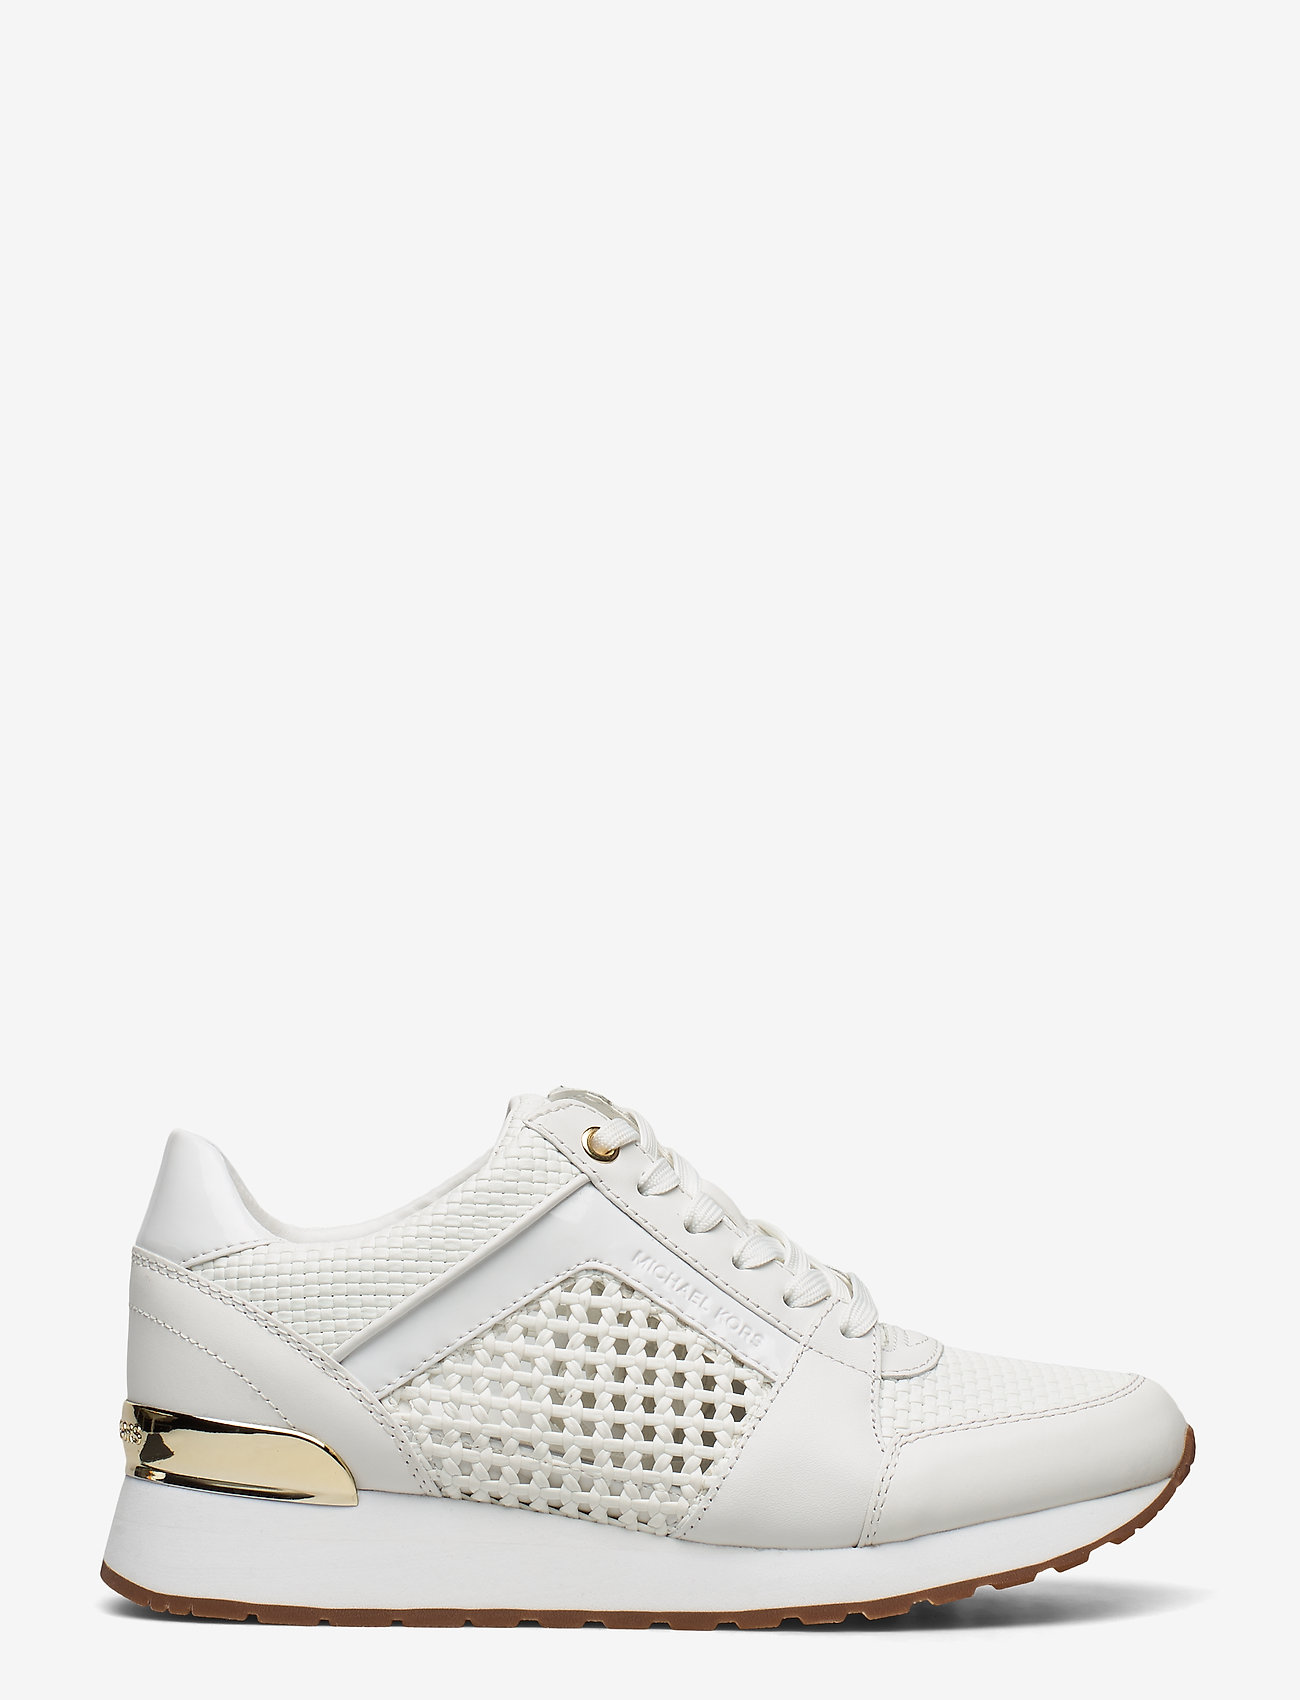 Michael Kors Shoes - BILLIE TRAINER - low top sneakers - optic white